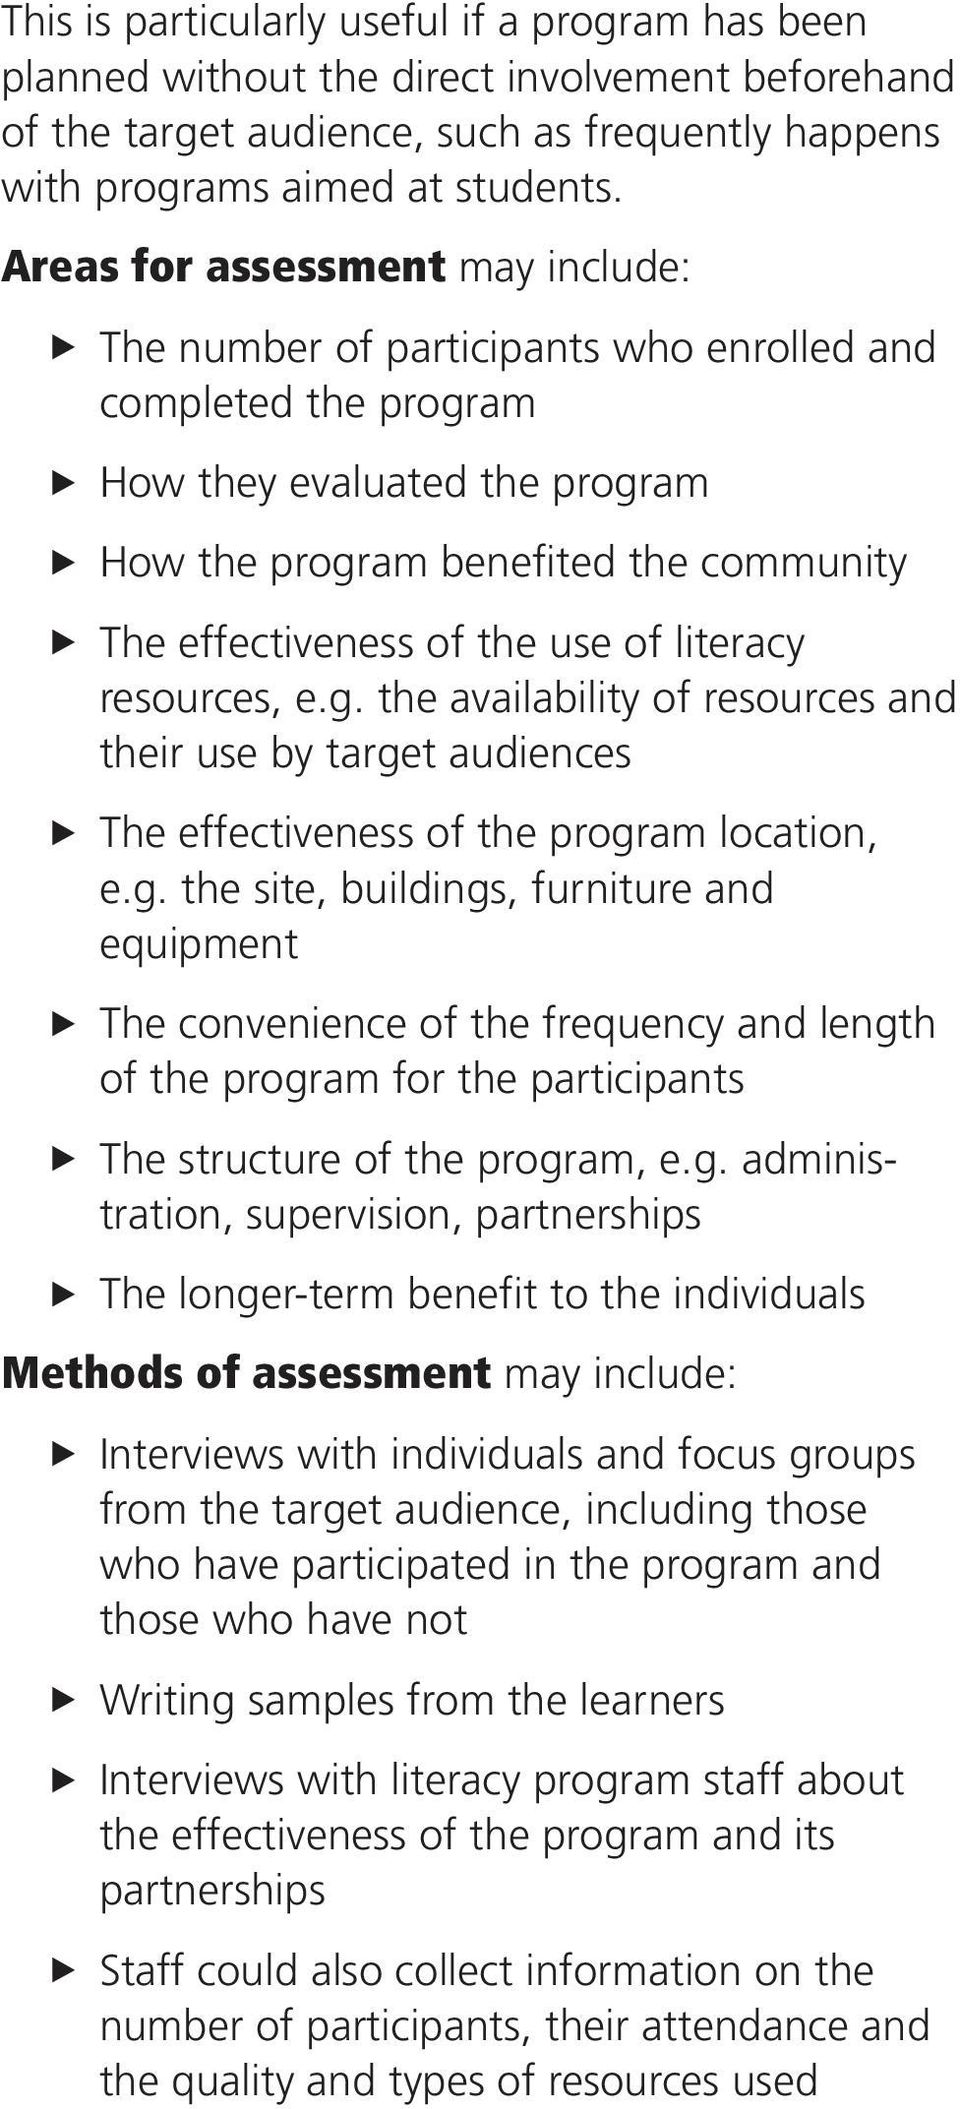 of literacy resources, e.g. the availability of resources and their use by target audiences The effectiveness of the program location, e.g. the site, buildings, furniture and equipment The convenience of the frequency and length of the program for the participants The structure of the program, e.